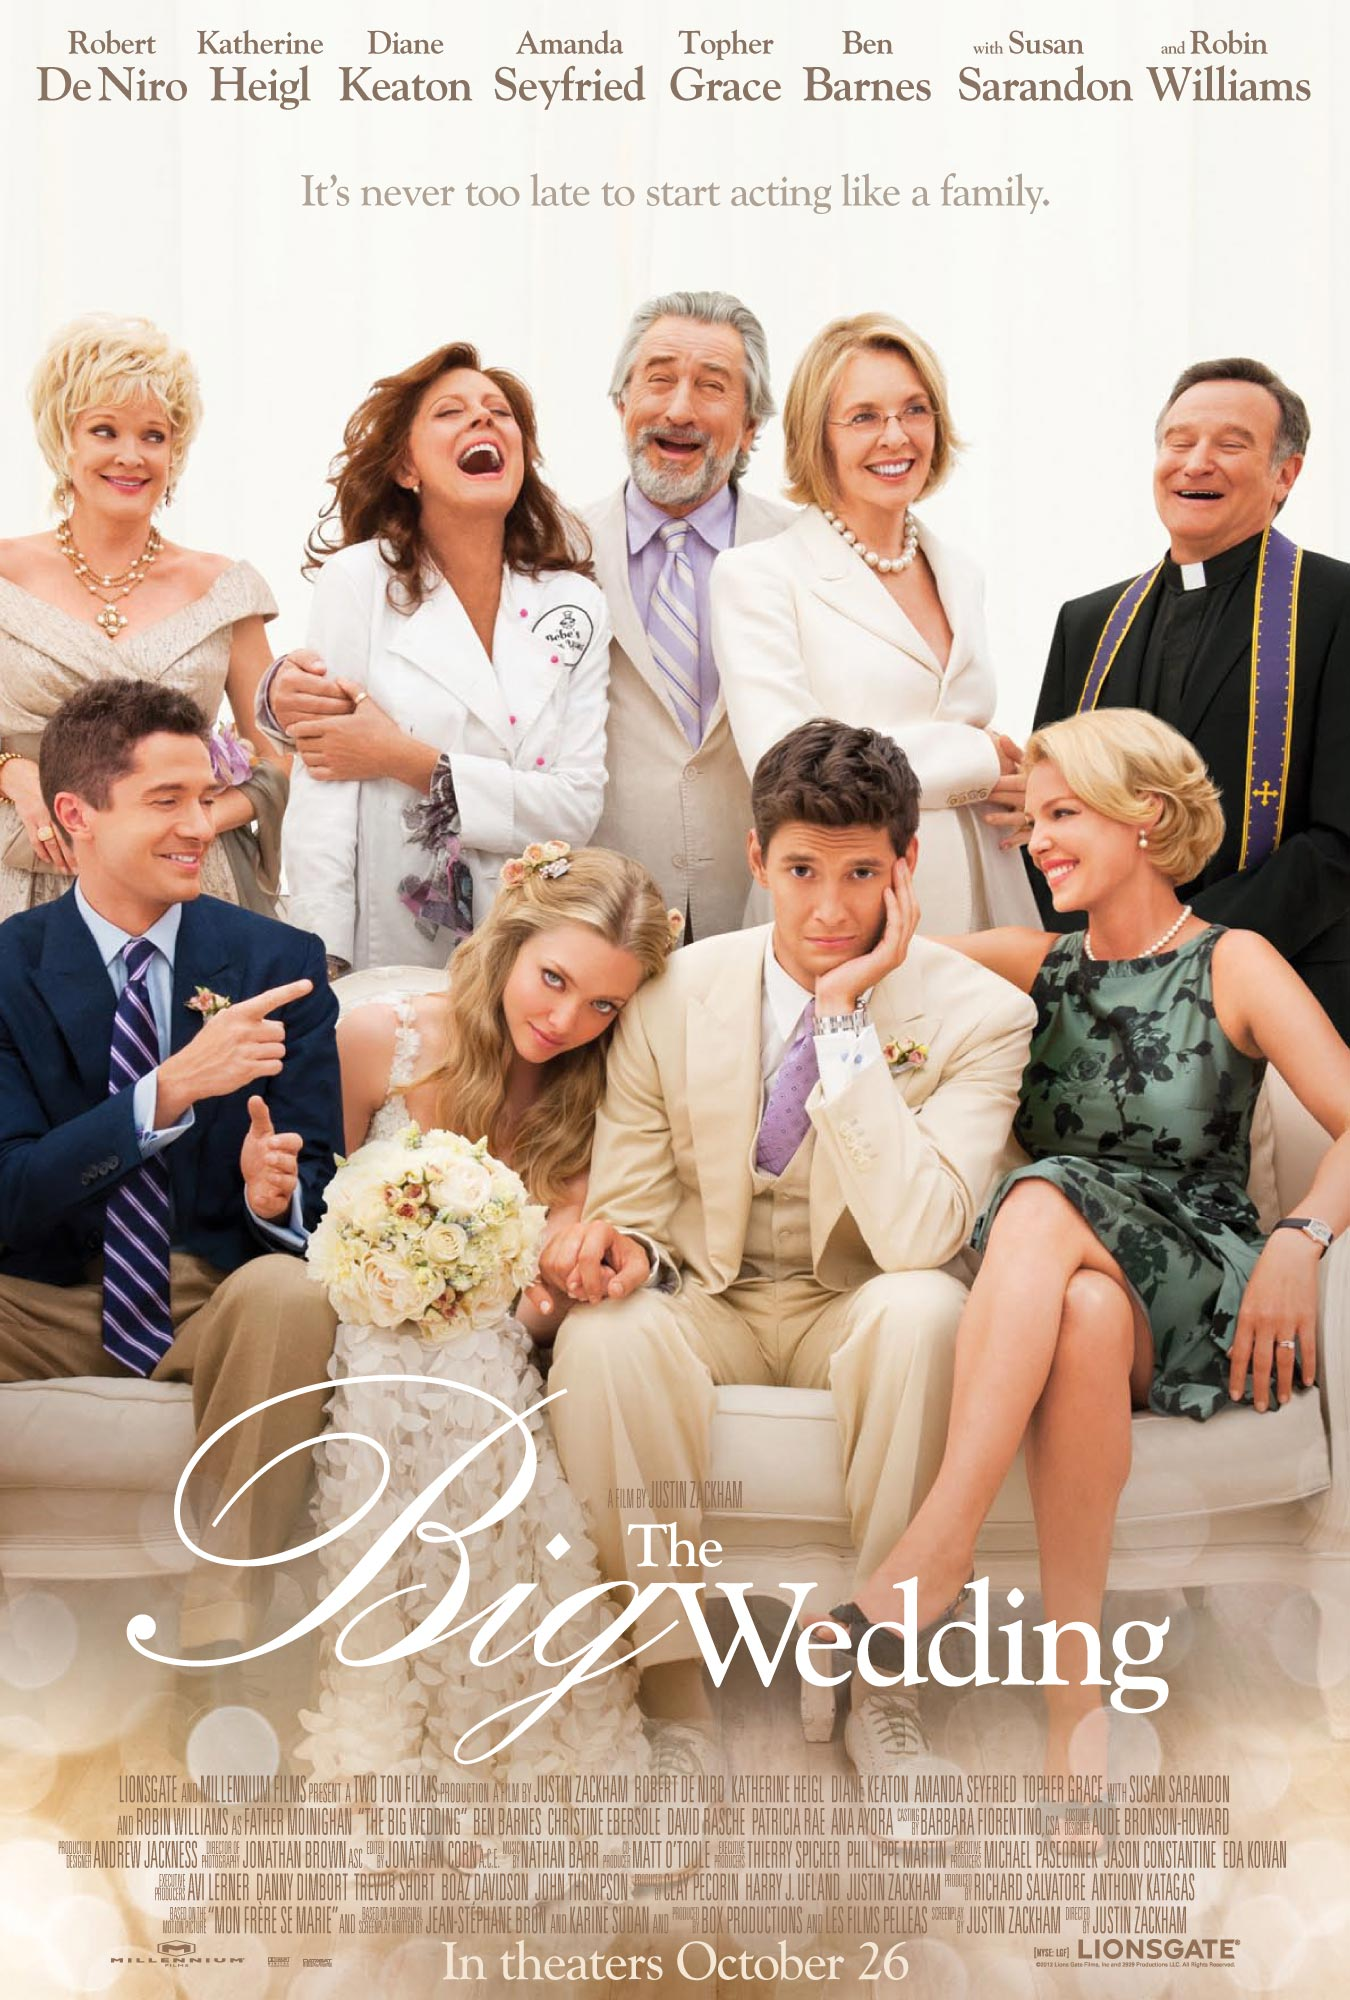 THE BIG WEDDING Trailer and Poster - FilmoFilia